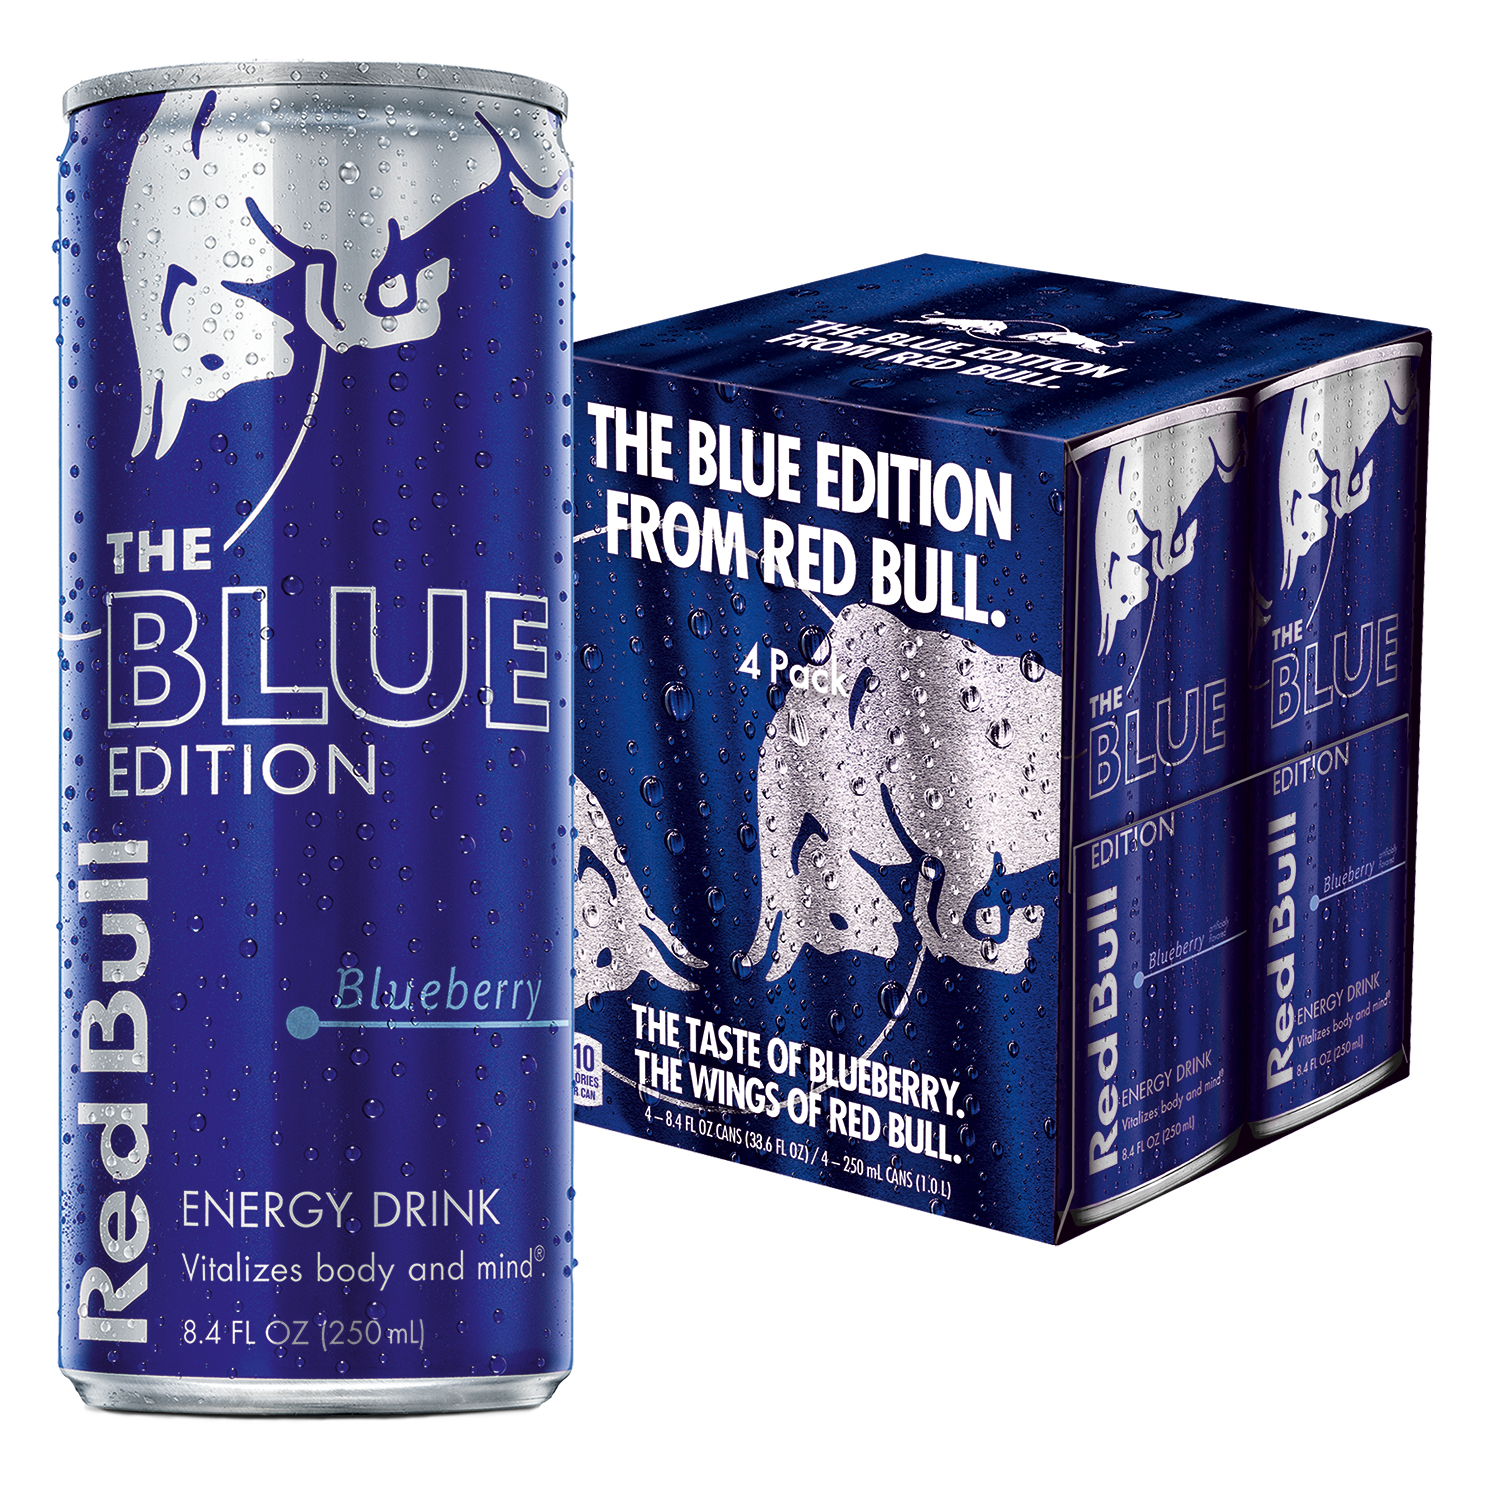 Red Bull Blue Edition, Blueberry Energy Drink, 8.4 Fl Oz Cans, 4 Pack